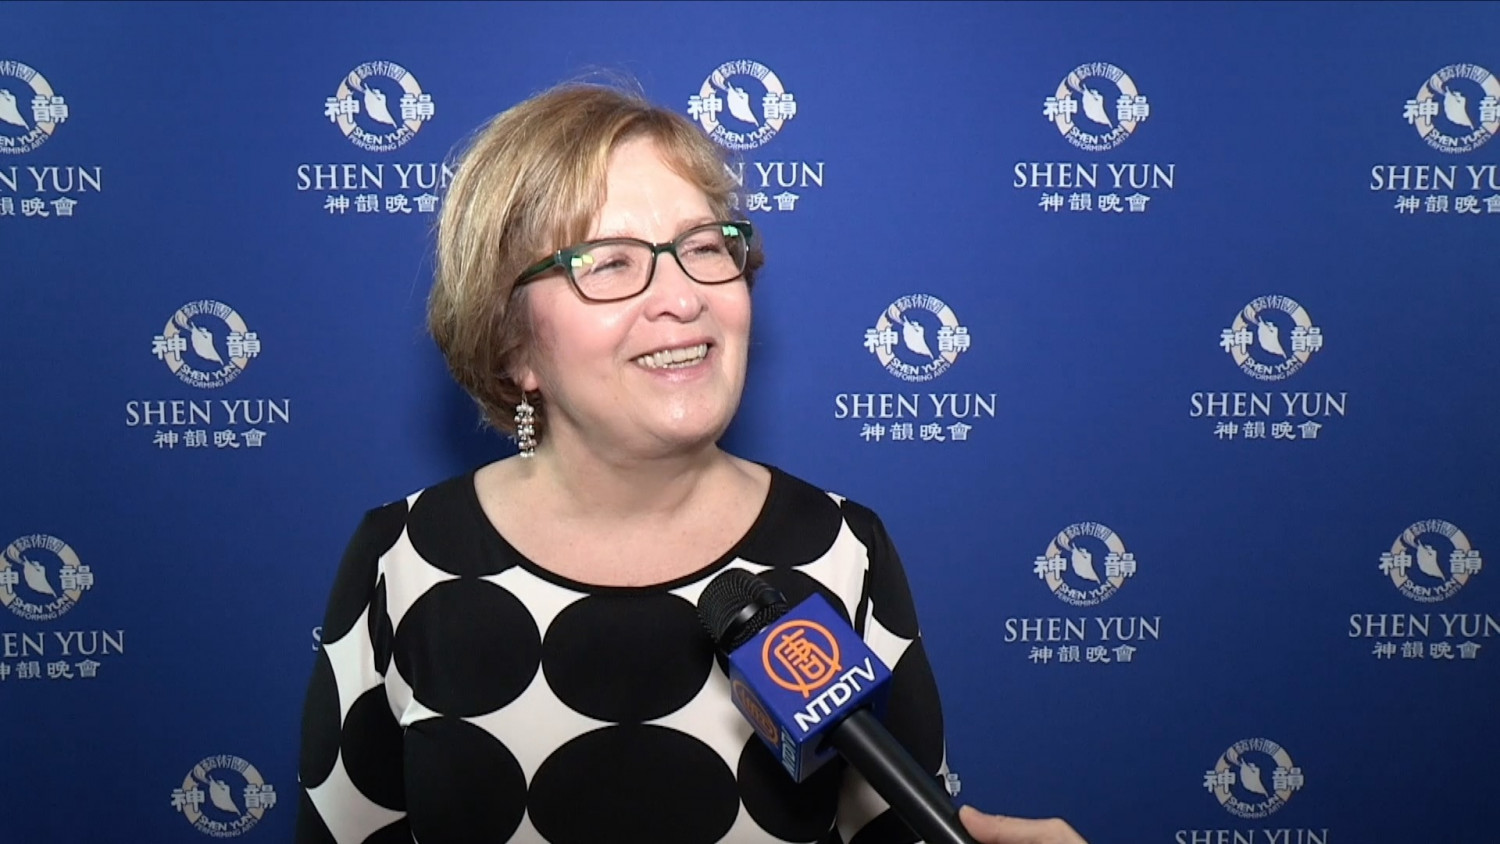 CEO Appreciate Shen Yun's Efforts to Show 'What's Going on in China'